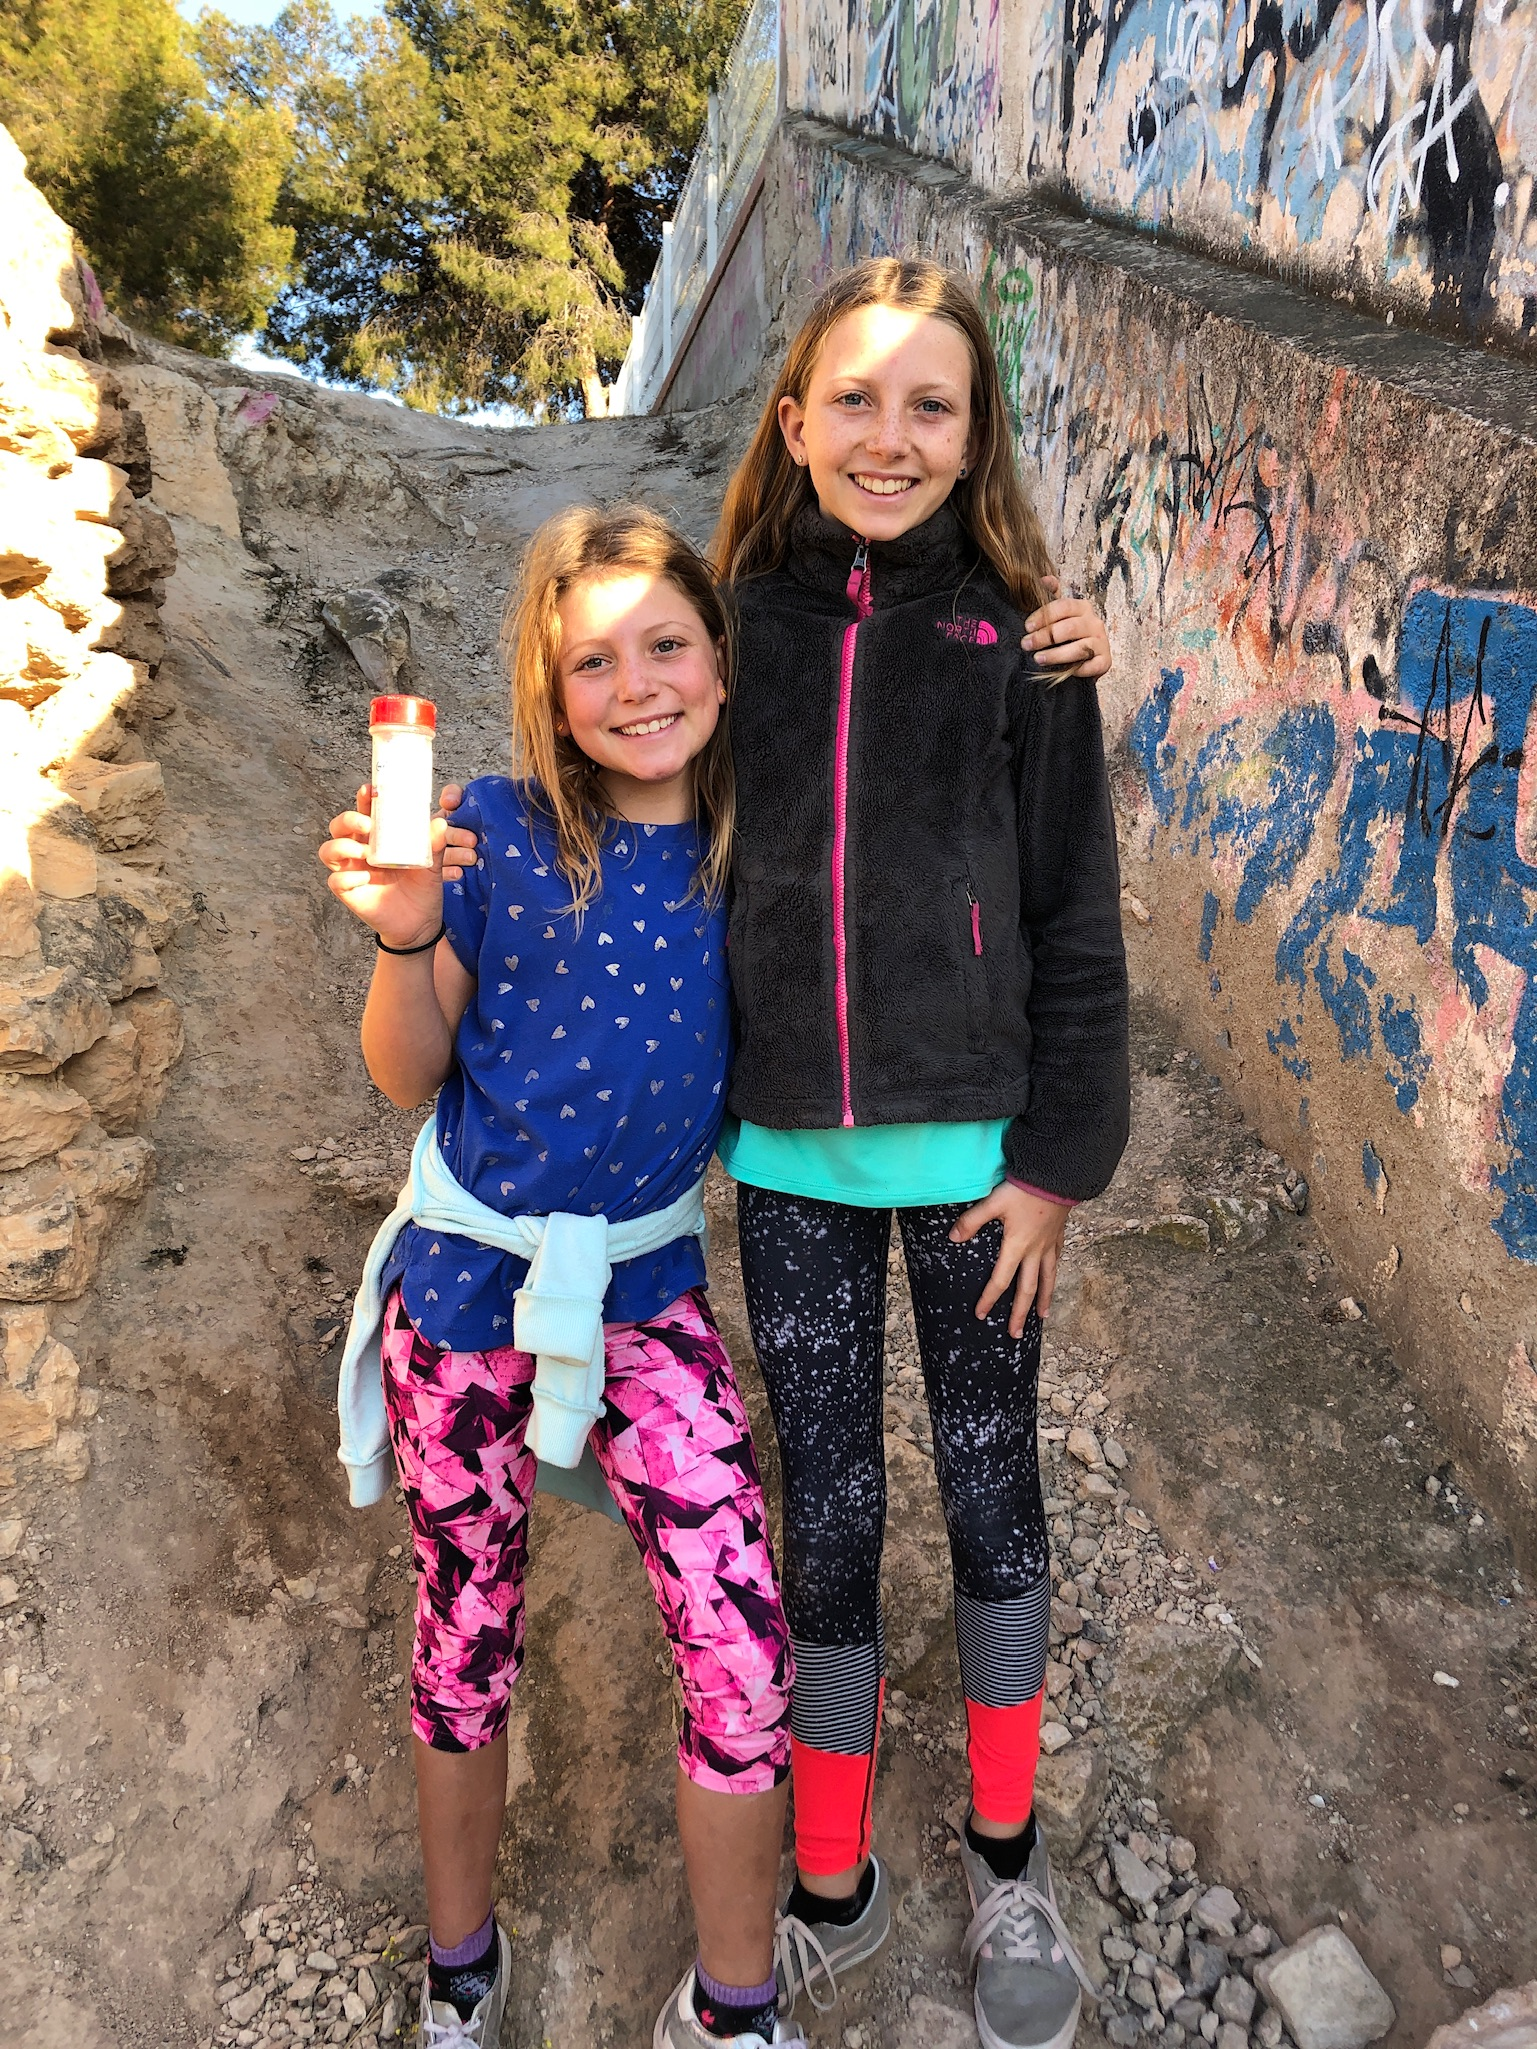 The girls with the first Geocache we found.